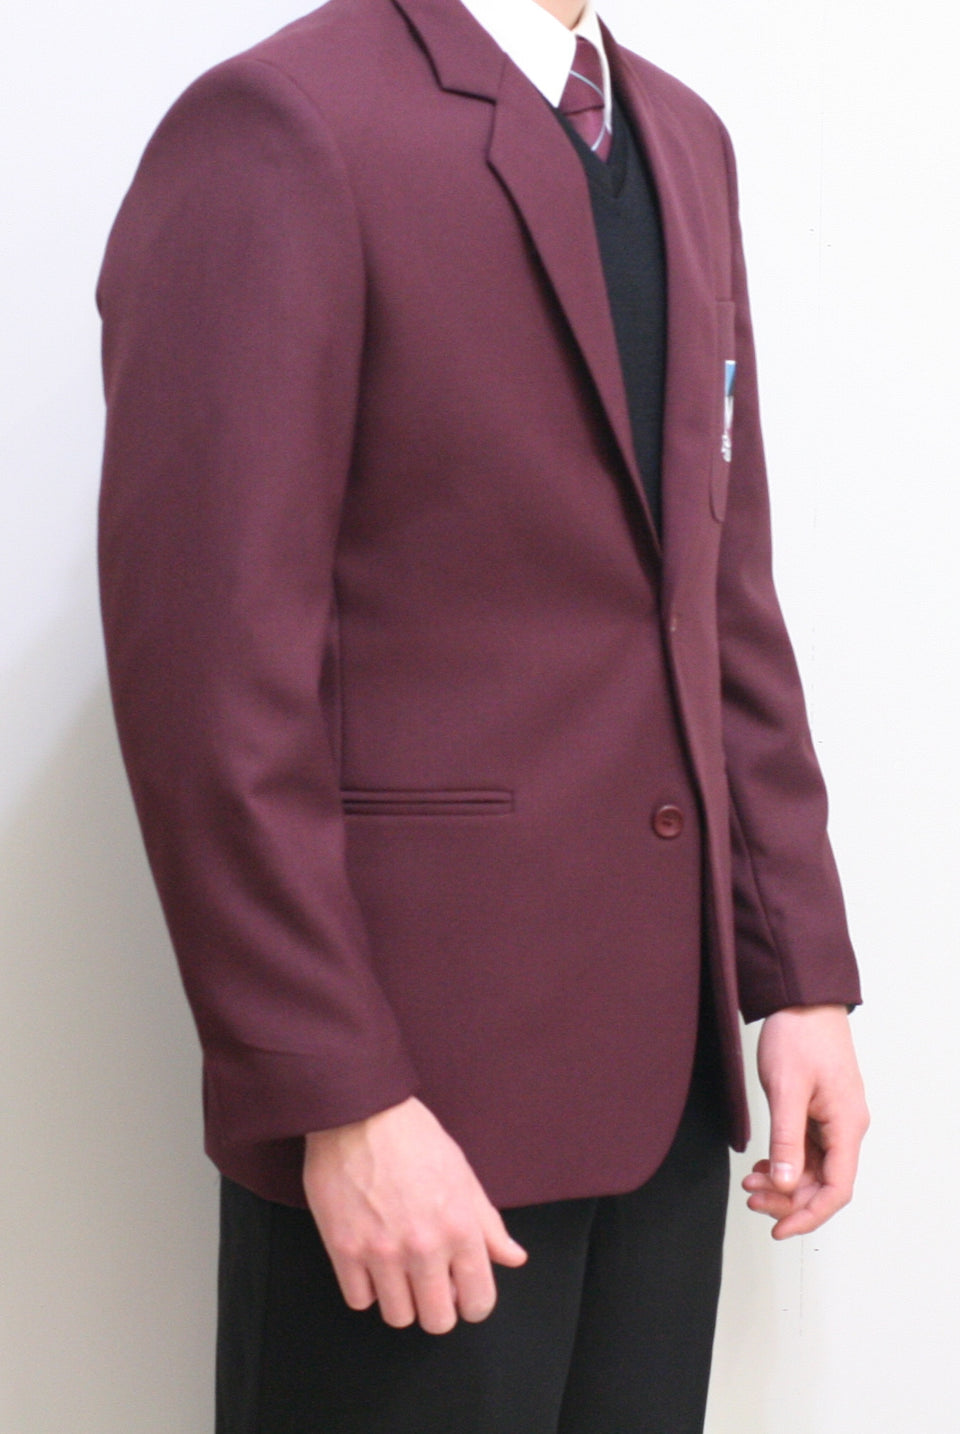 Senior Boys Blazer